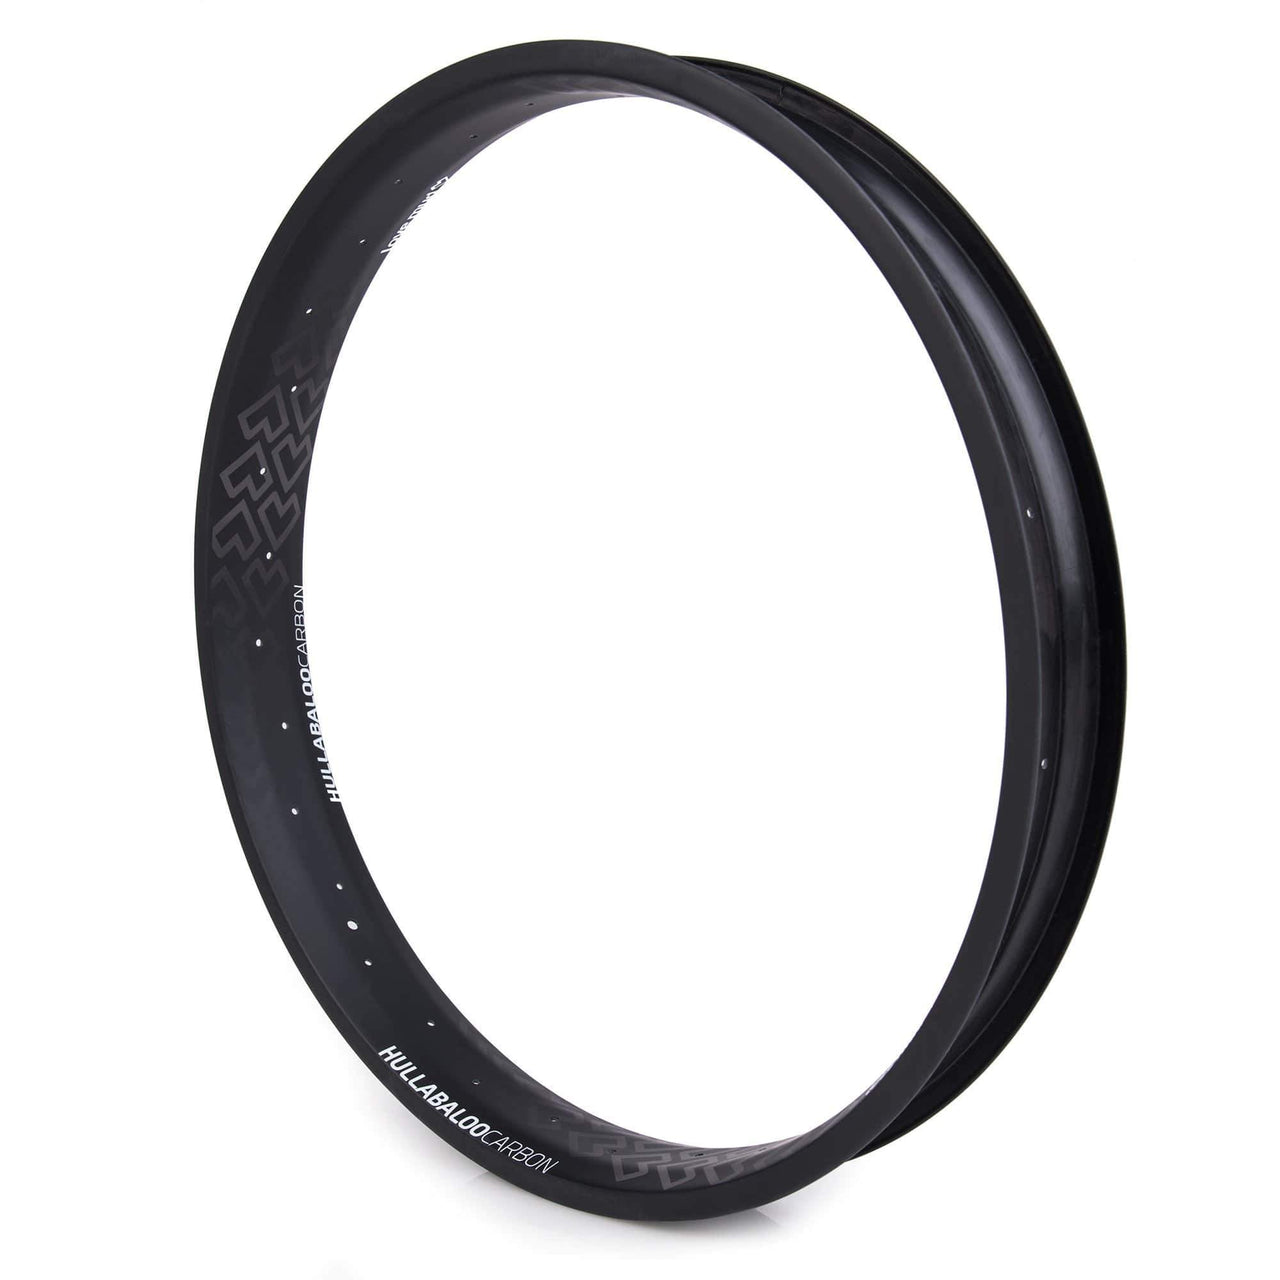 Love Mud Hullabaloo Fat Carbon Rim